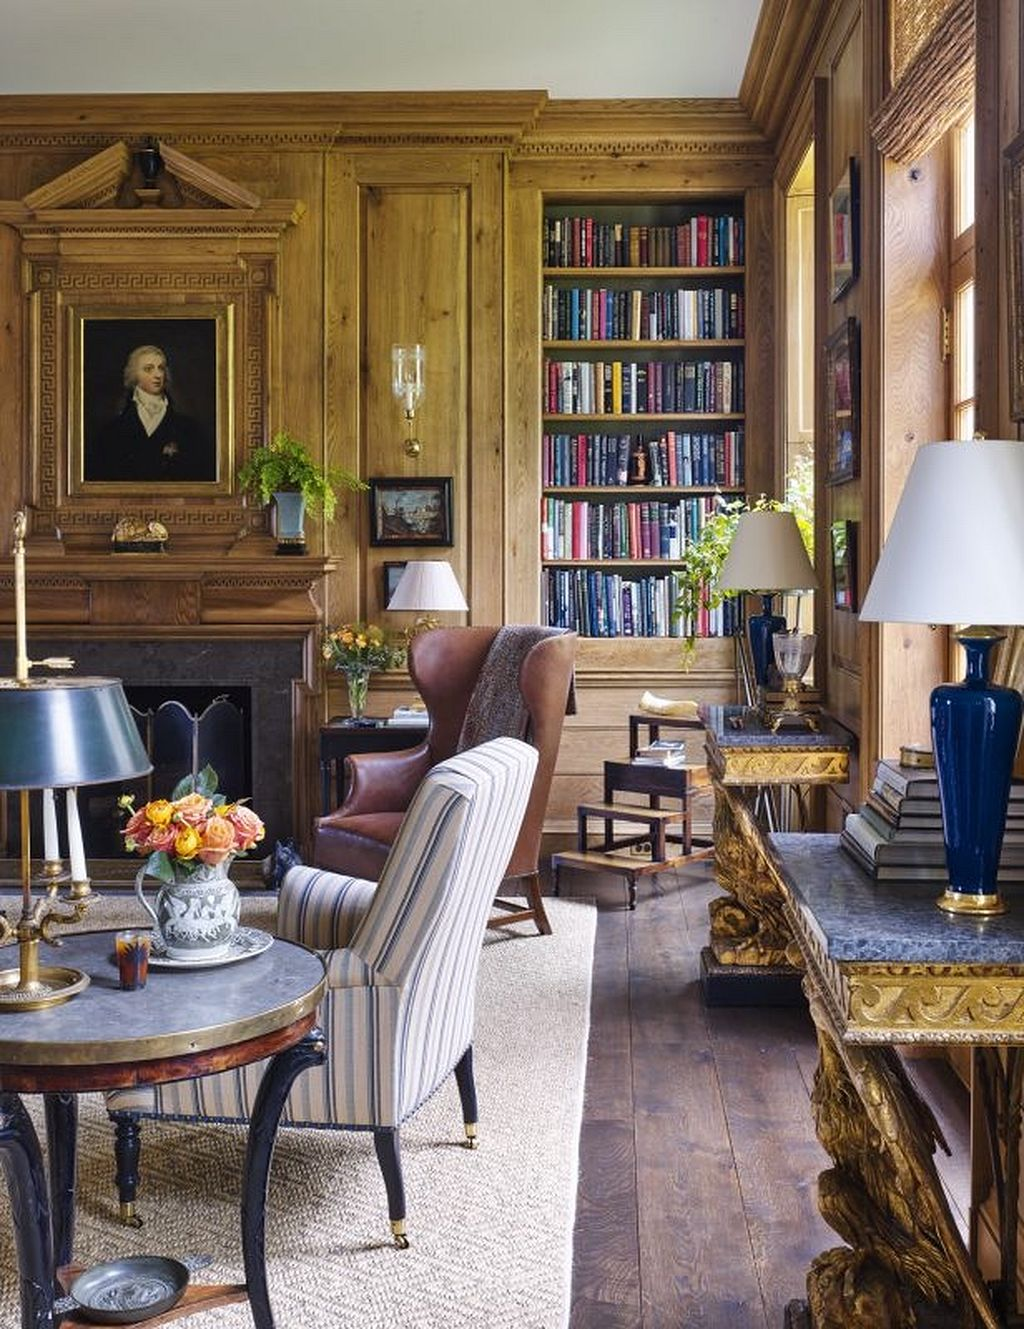 Country Home Interior Design: 18 Images Of English Country Home Decor Ideas